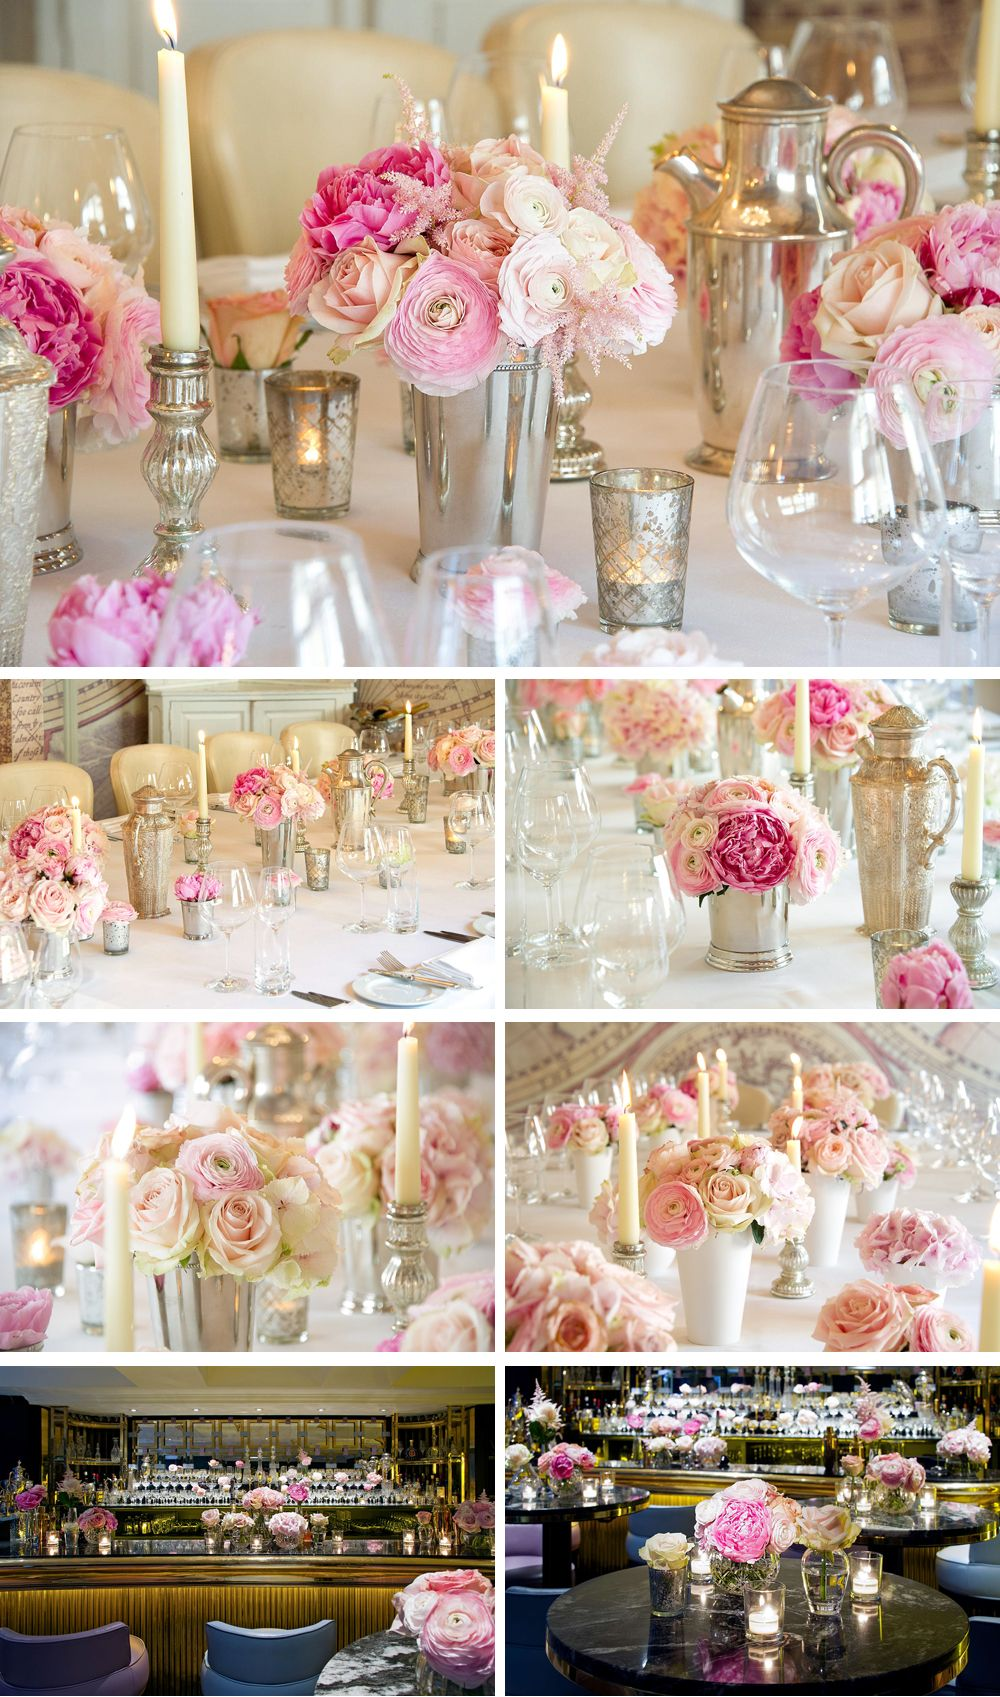 Party flowers and event flowers by Philippa Craddock